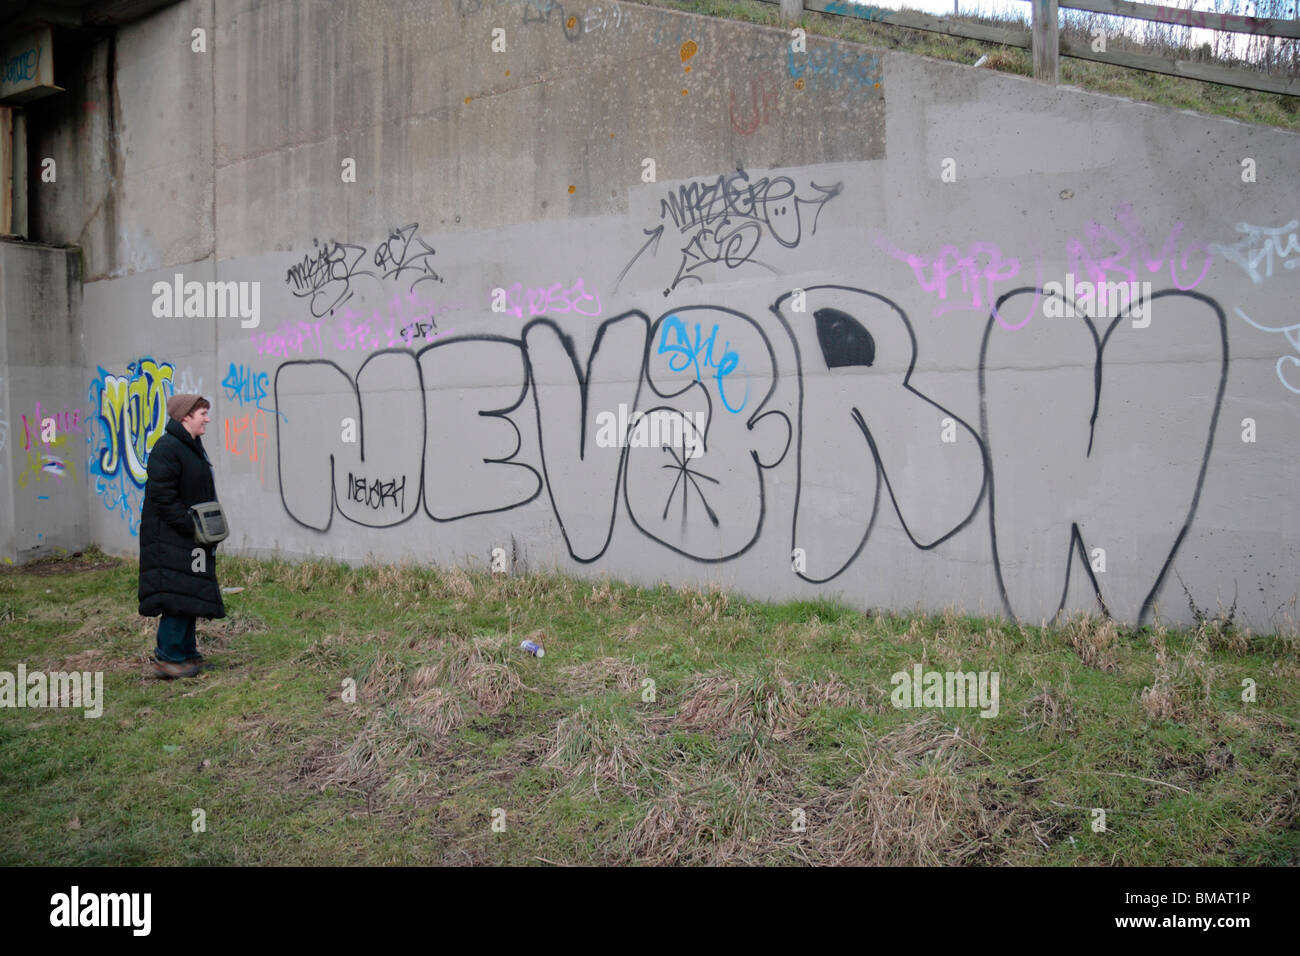 A woman looks at graffiti scrawled on a concrete wall in brentford middx uk